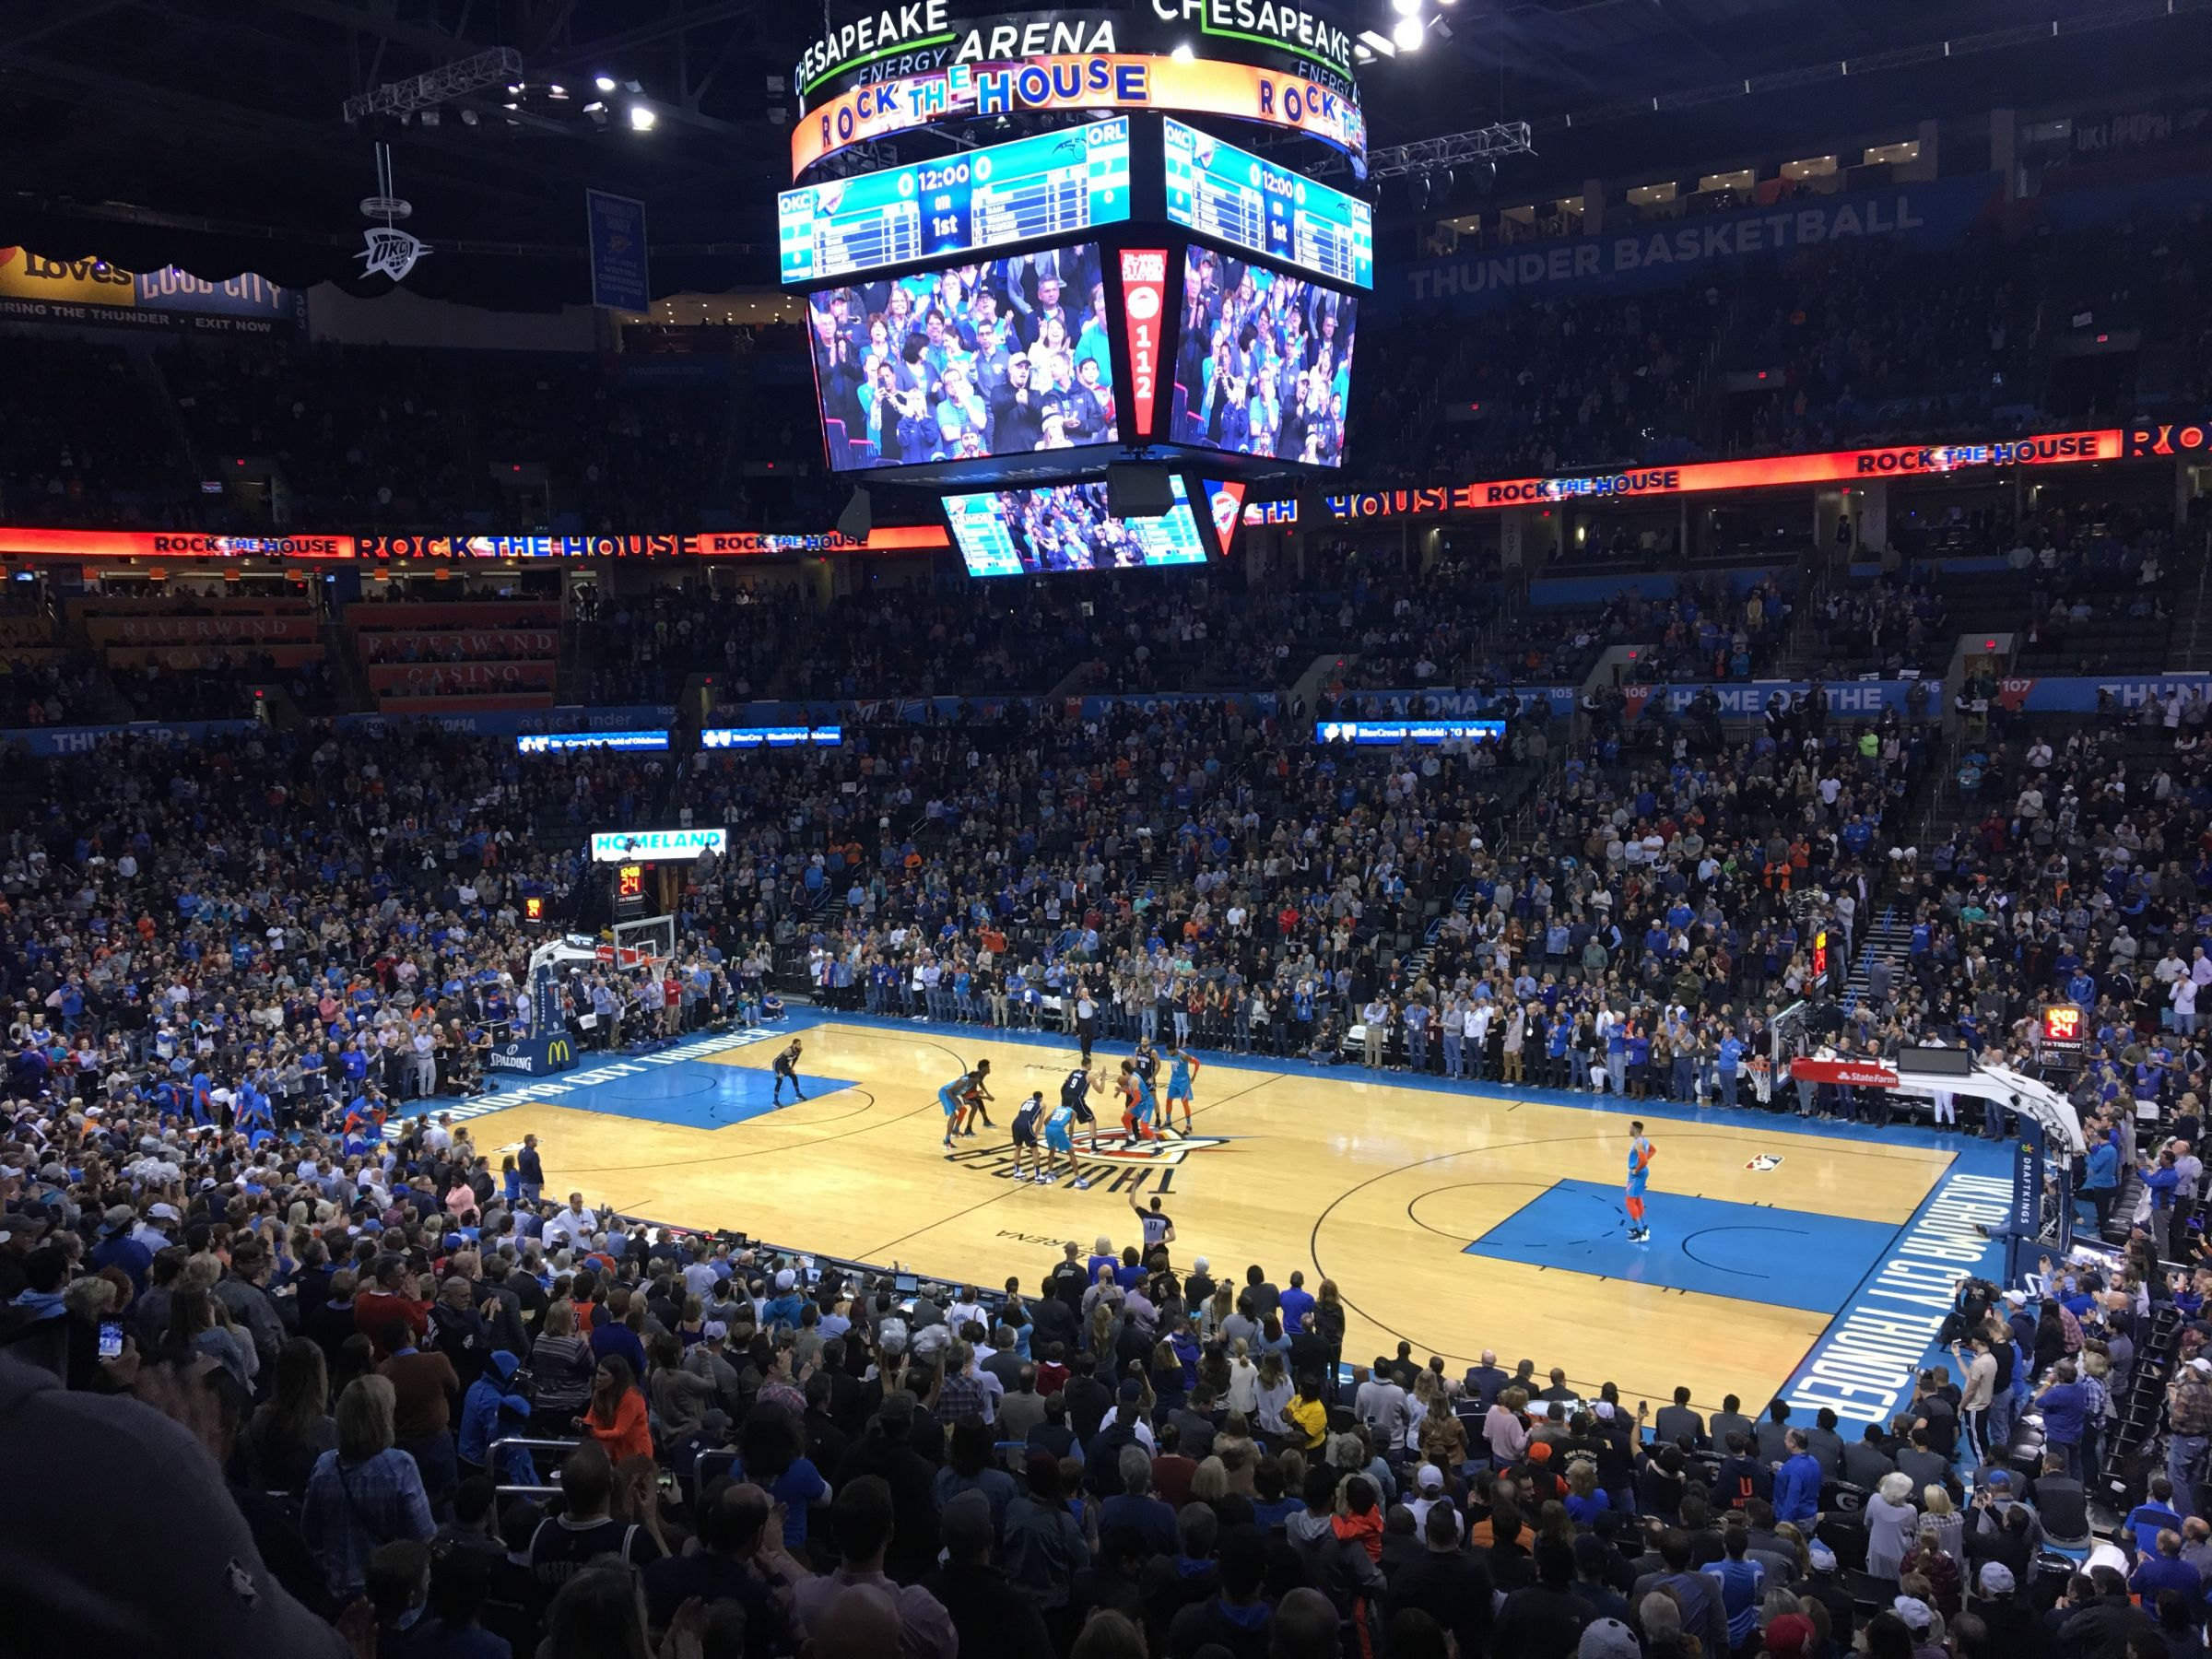 Seat View for Chesapeake Energy Arena Section 221, Row B, Seat 12